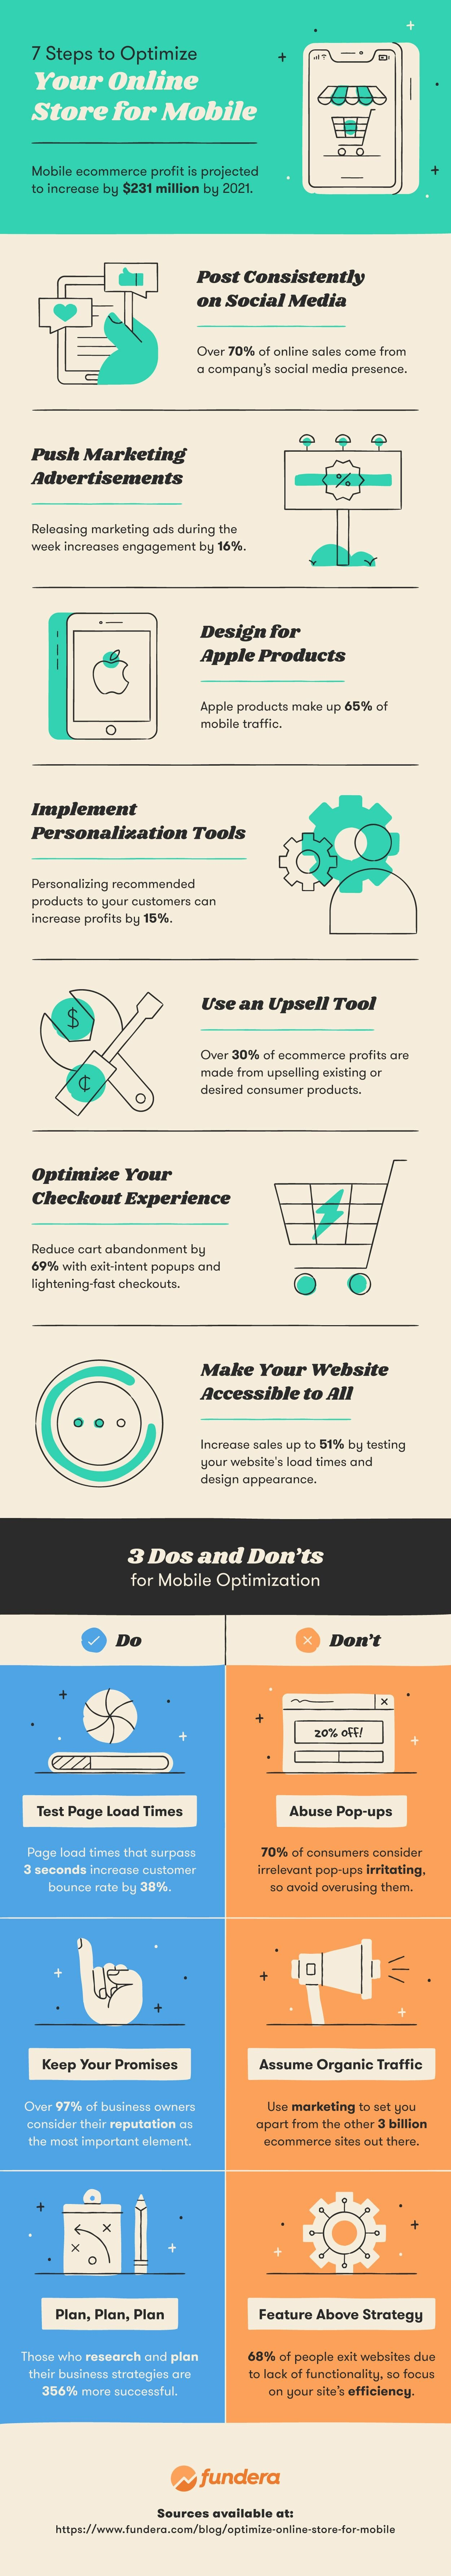 optimize your online store for mobile